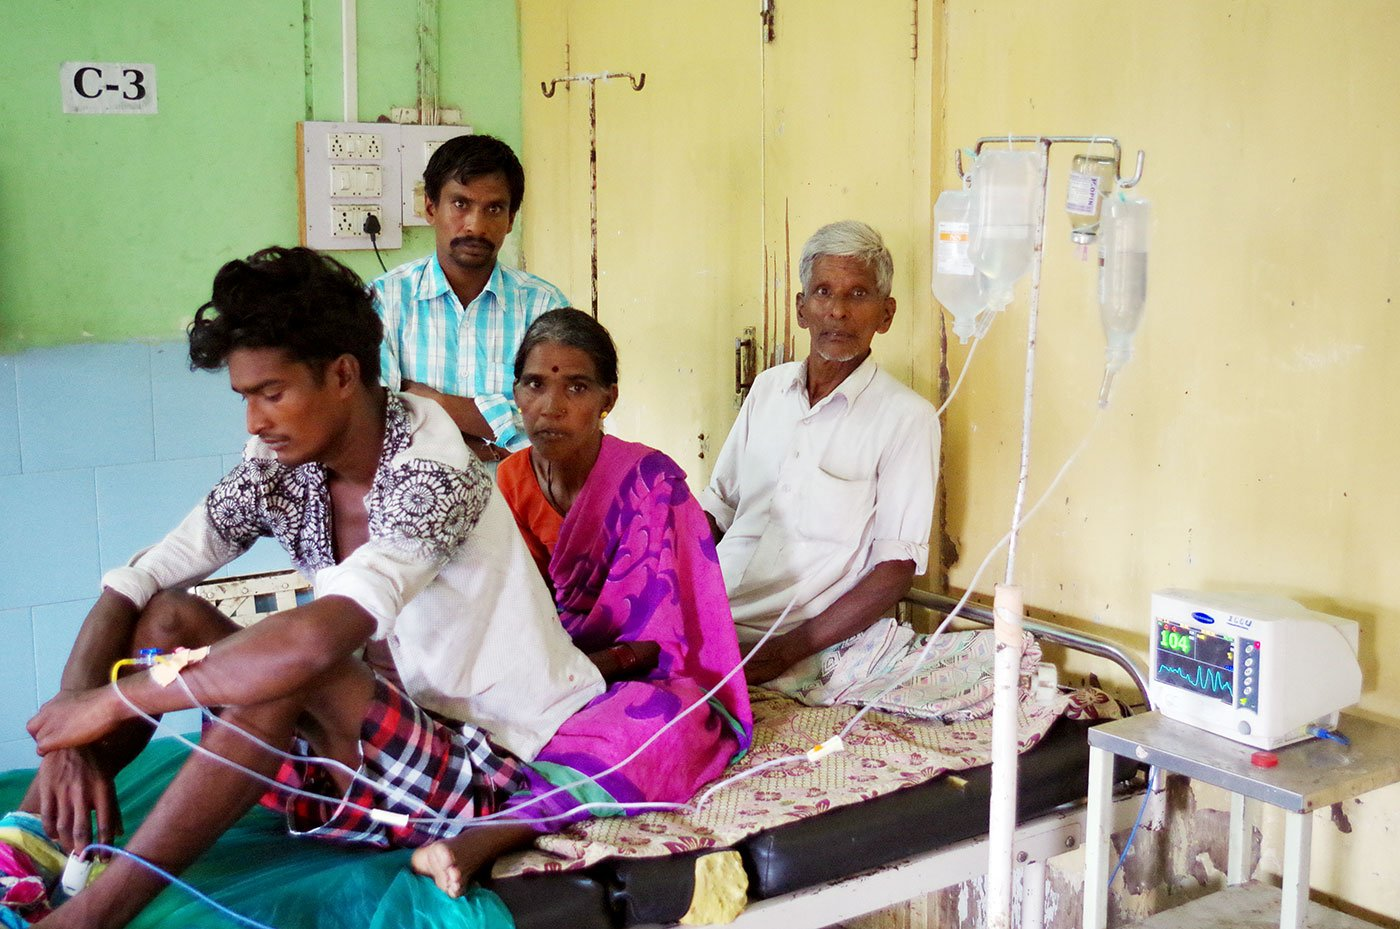 Nikesh Kathane, a 21-year-old farm labourer, recuperating in the ICU of the Yavatmal Government Medical College and Hospital in September 2017, after falling sick in the wake of accidental inhalation of pesticide while spraying it on his owner's field. With him are his parents Keshavrao and Tarabai and his elder brother Laxman